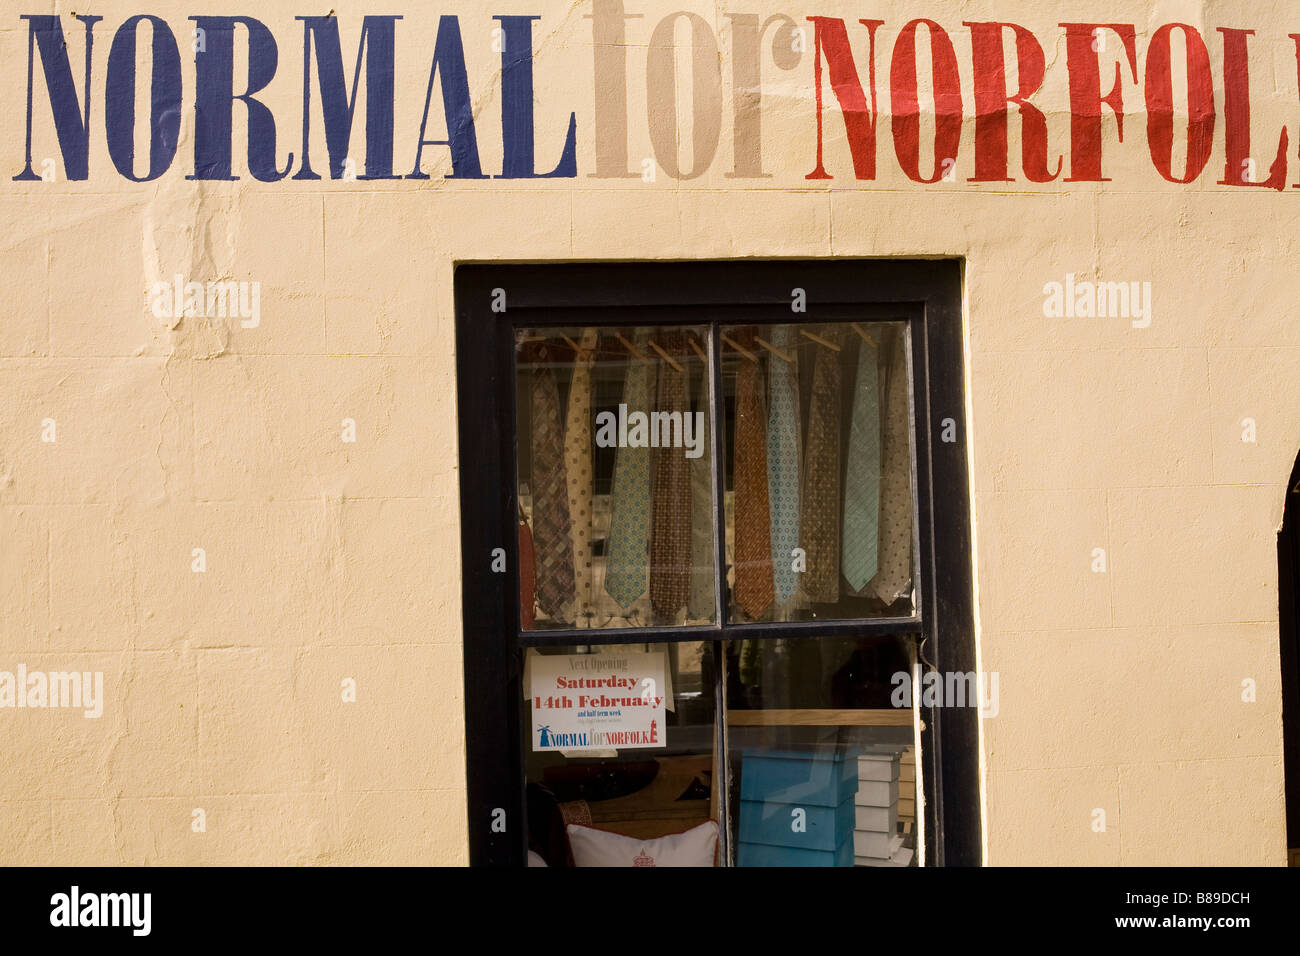 'Normal for Norfolk' sign above small shop in Norfolk - Stock Image